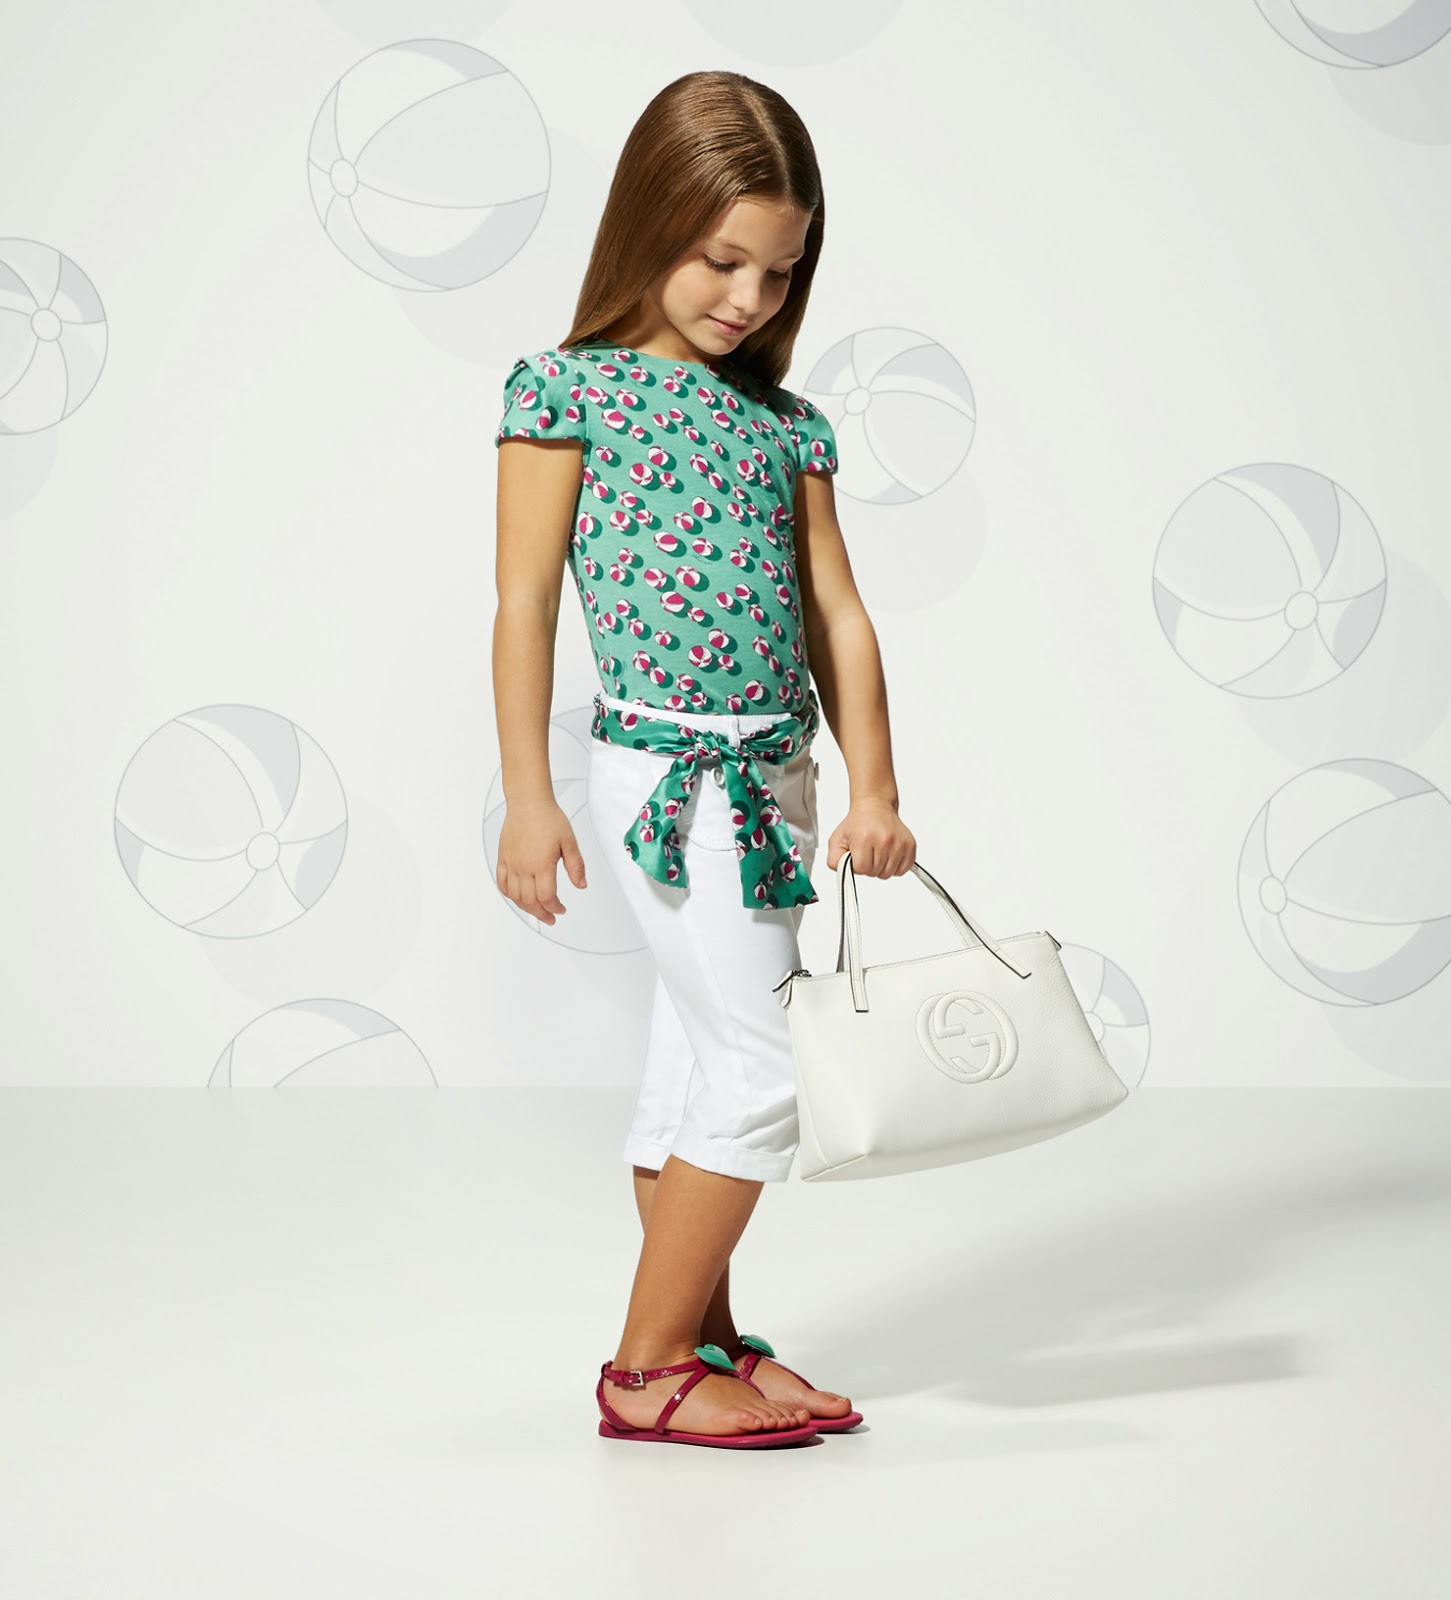 ... kid dit mode gucci enfant fille girl collection printemps eCC81teCC81  2014 fashion moda 7b43e9a05be